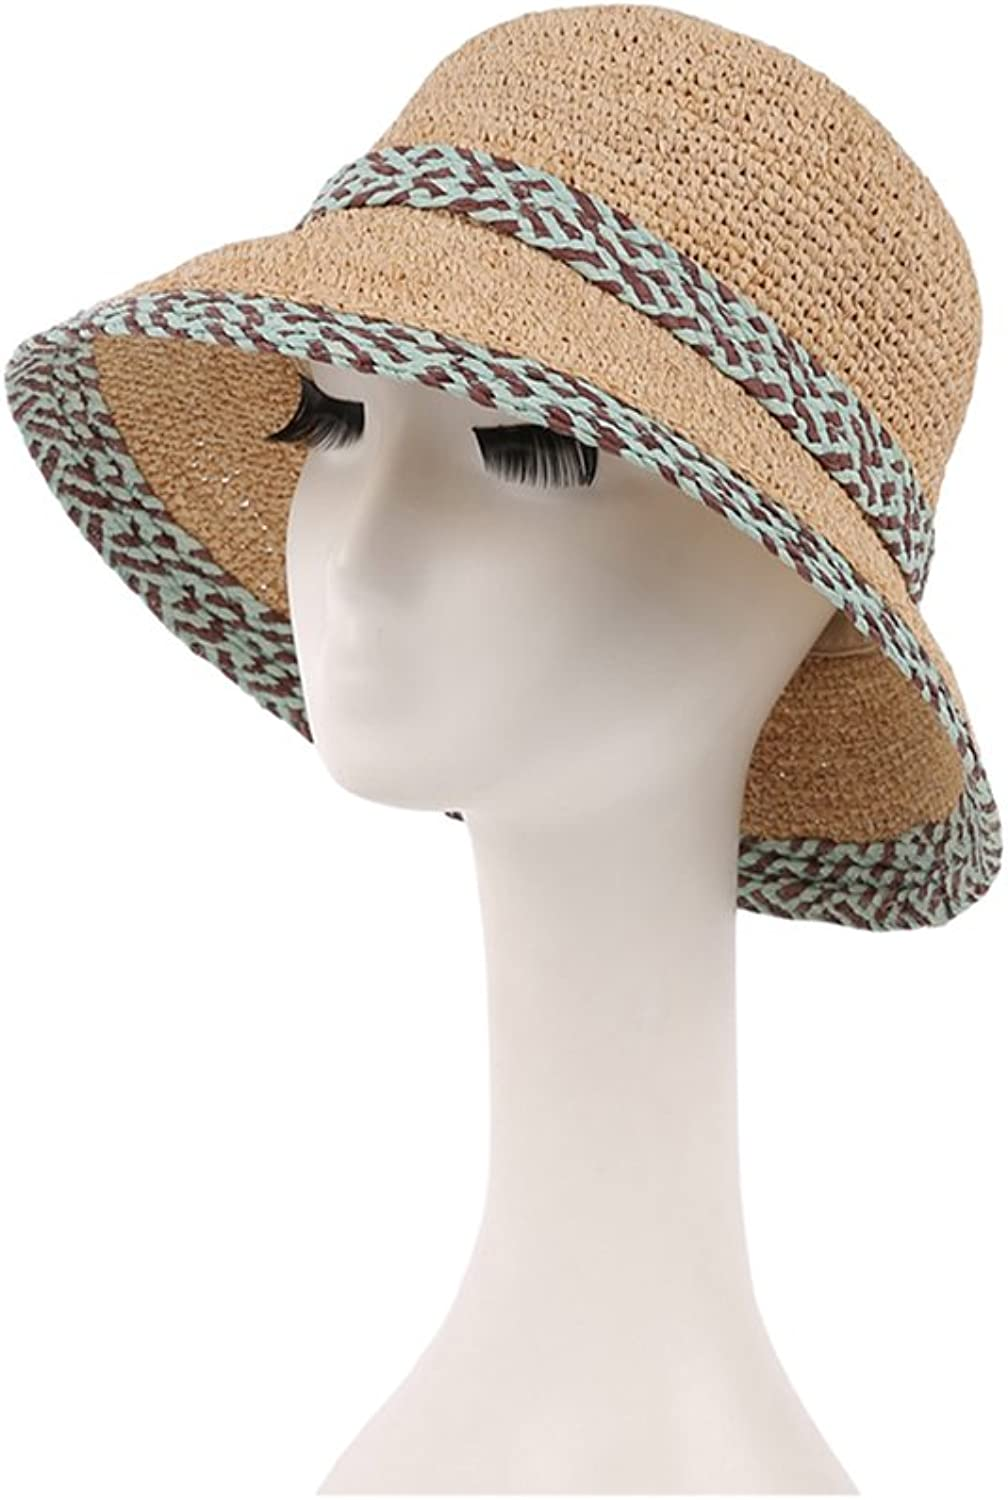 Straw Hat Sun Hat Lady Outdoor Sun Hat Summer Wind Sunscreen Travel Beach Hat Foldable Fashion Cooler (color   Green)